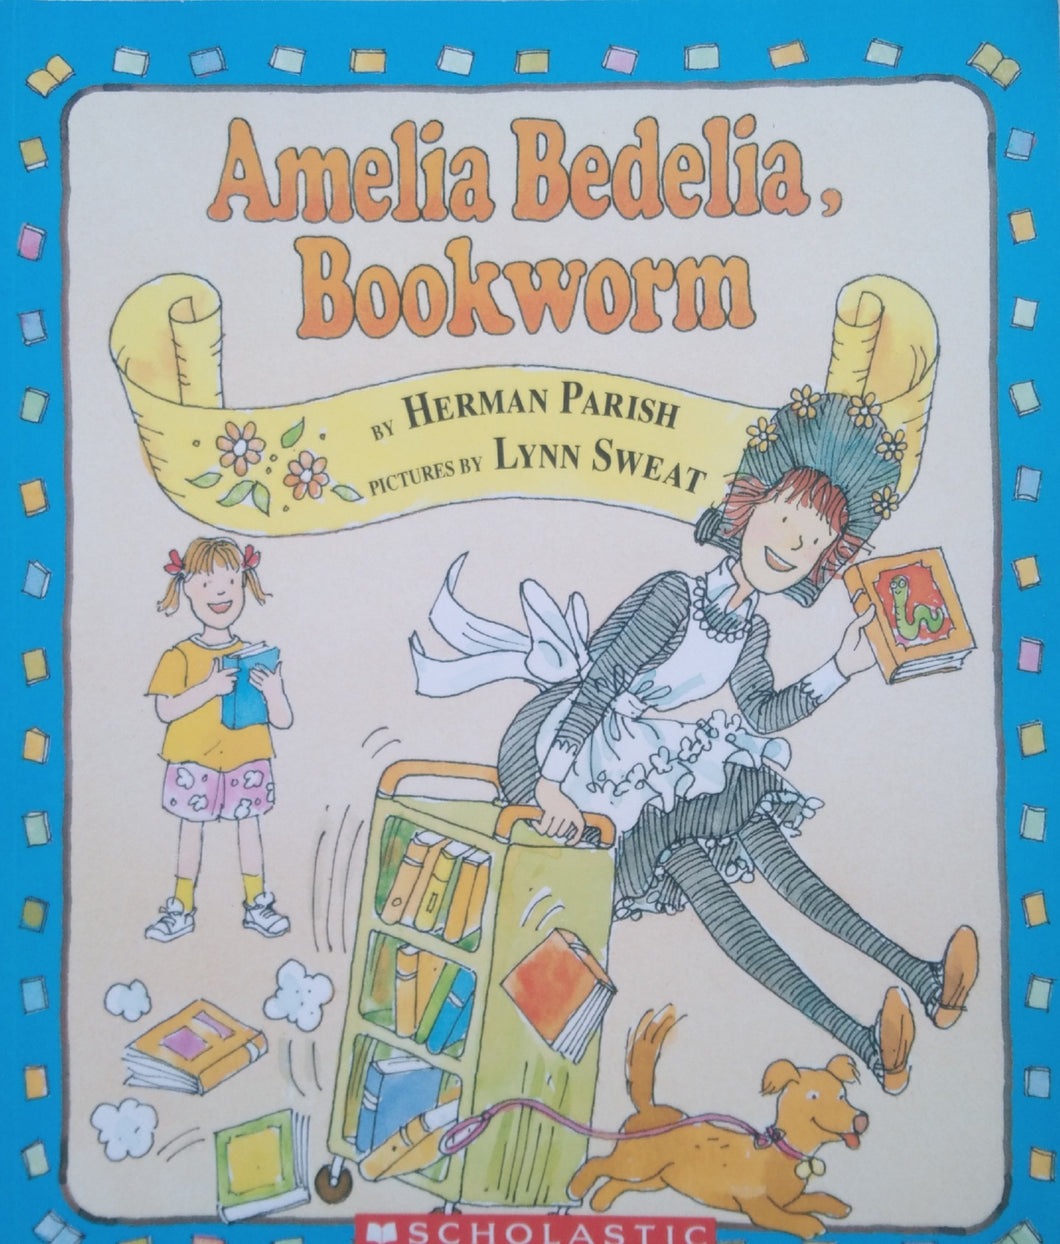 Amelia Bedelia, Bookworm by Herman Parish